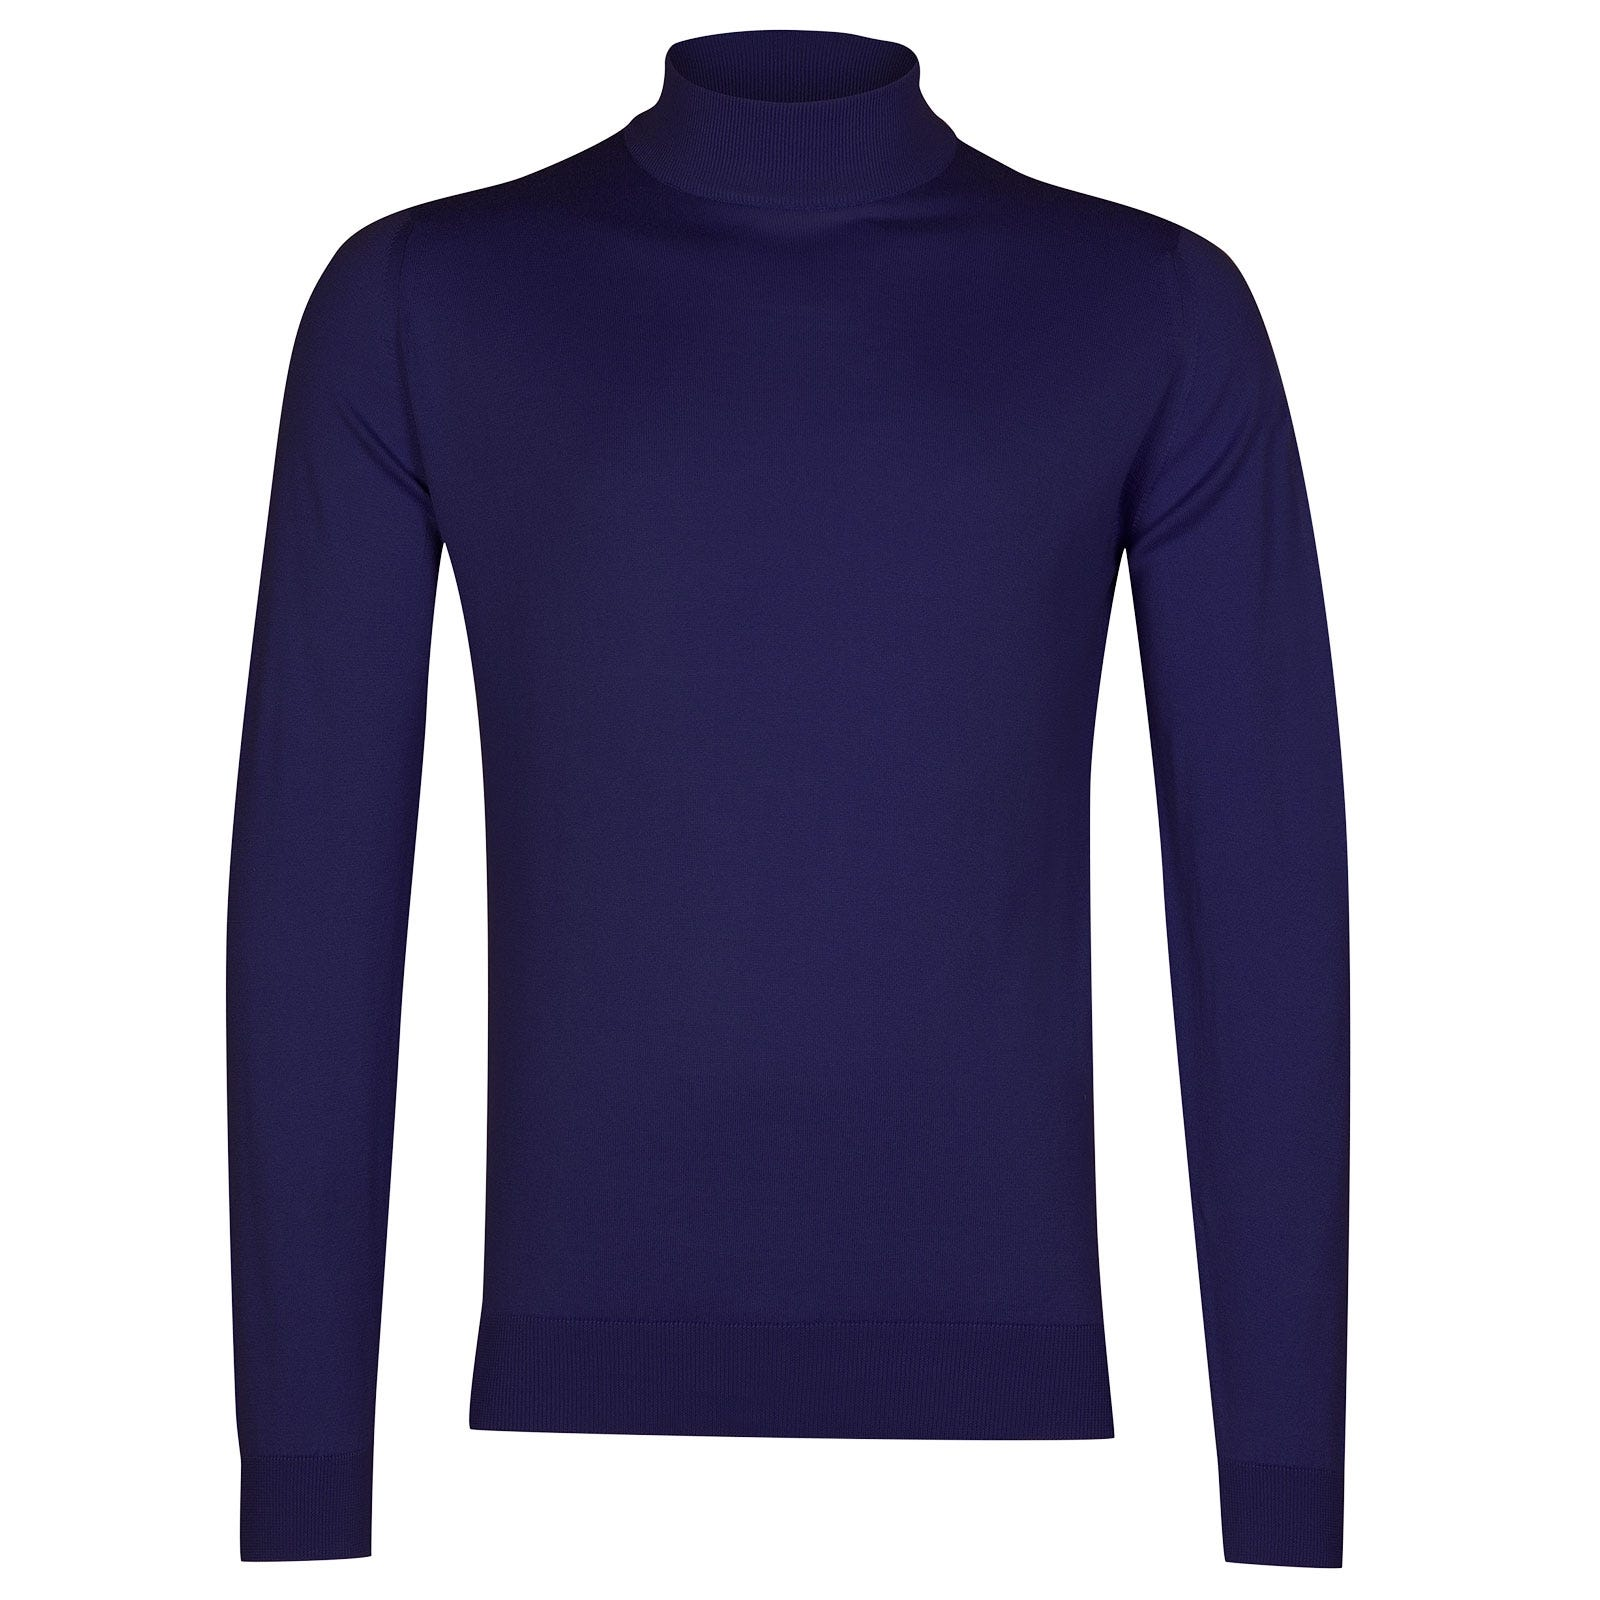 John Smedley Bradgate Sea Island Cotton Pullover in Serge Blue-XL